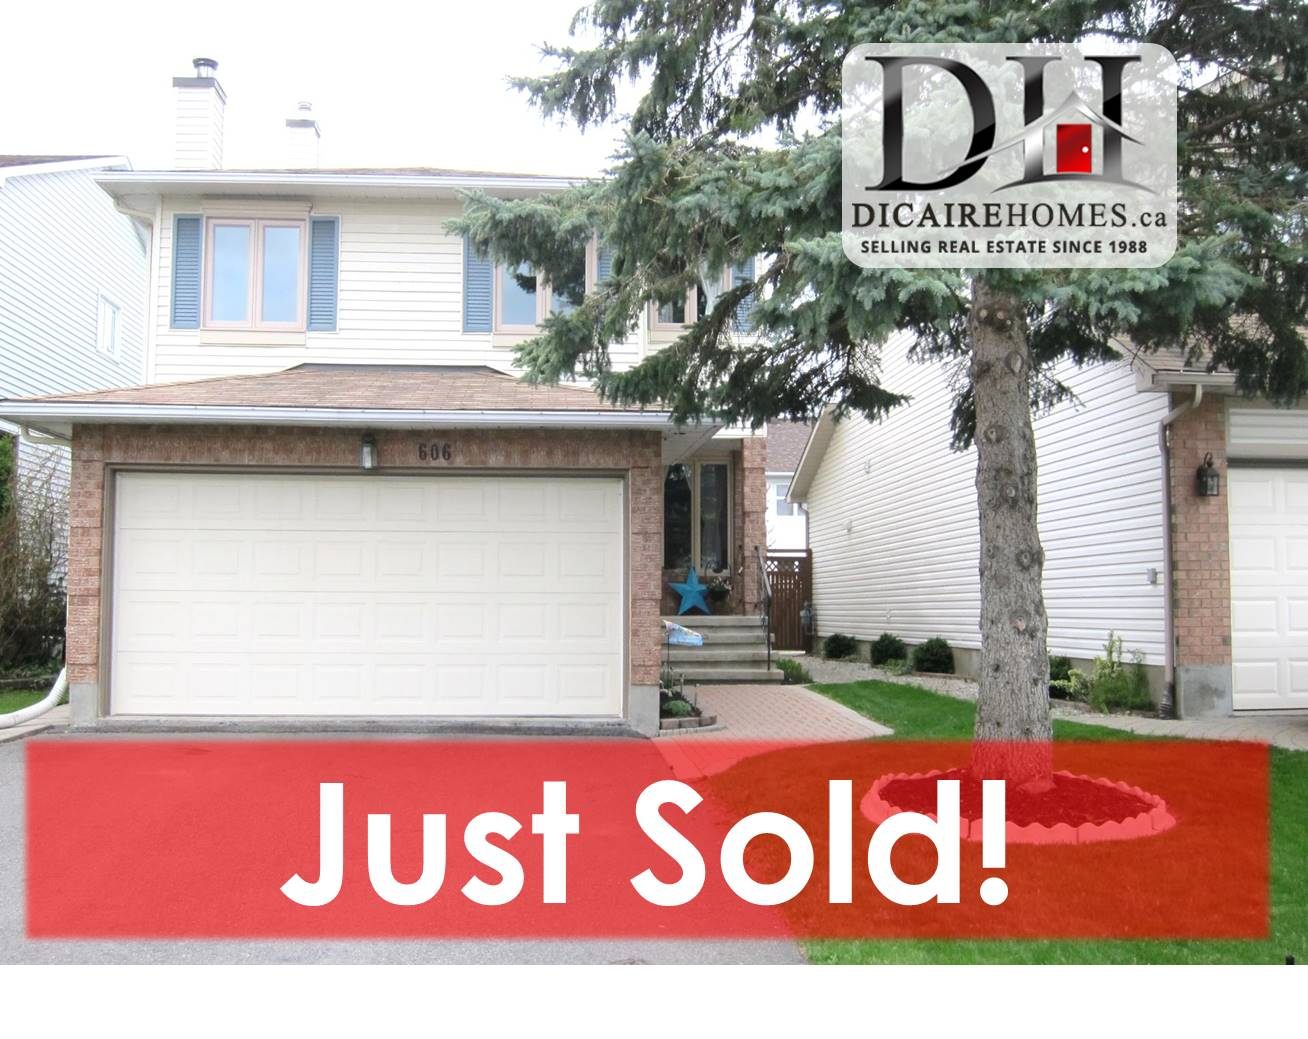 JUST SOLD - 606 TOURELLE DRIVE.jpg